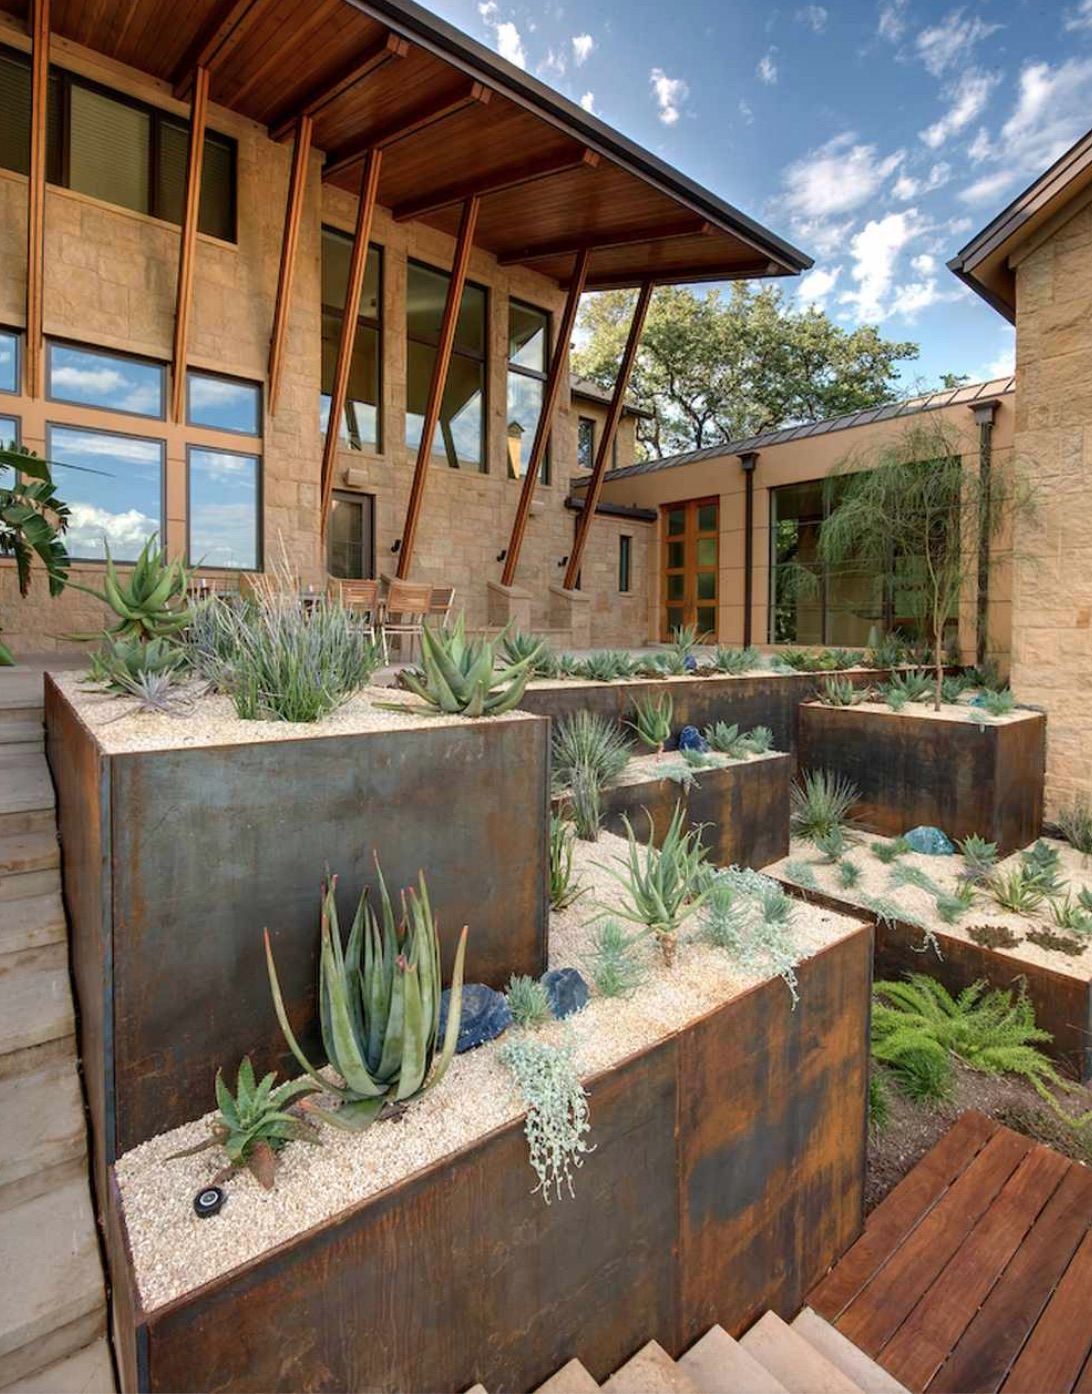 Copper retaining wall